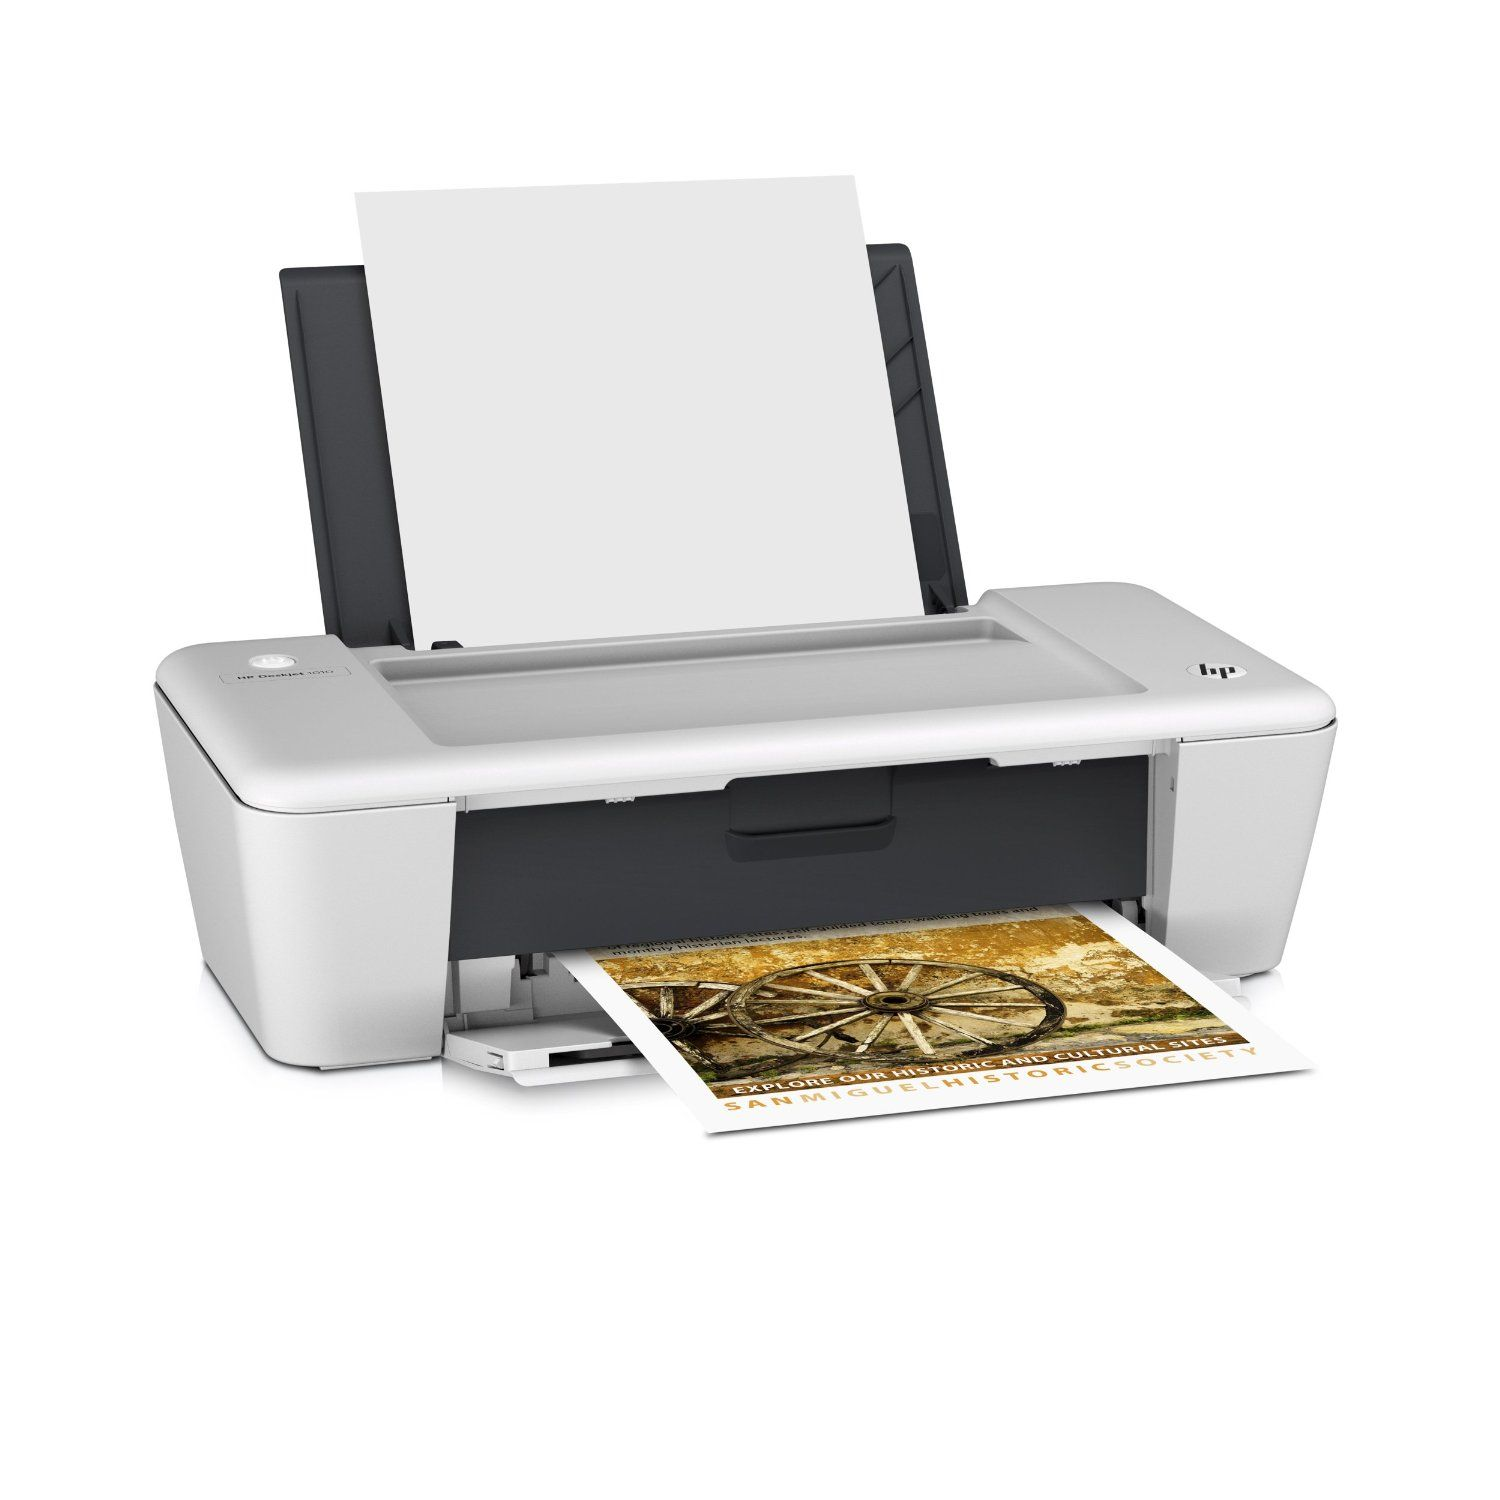 how to scan a document on hewlett packard printer